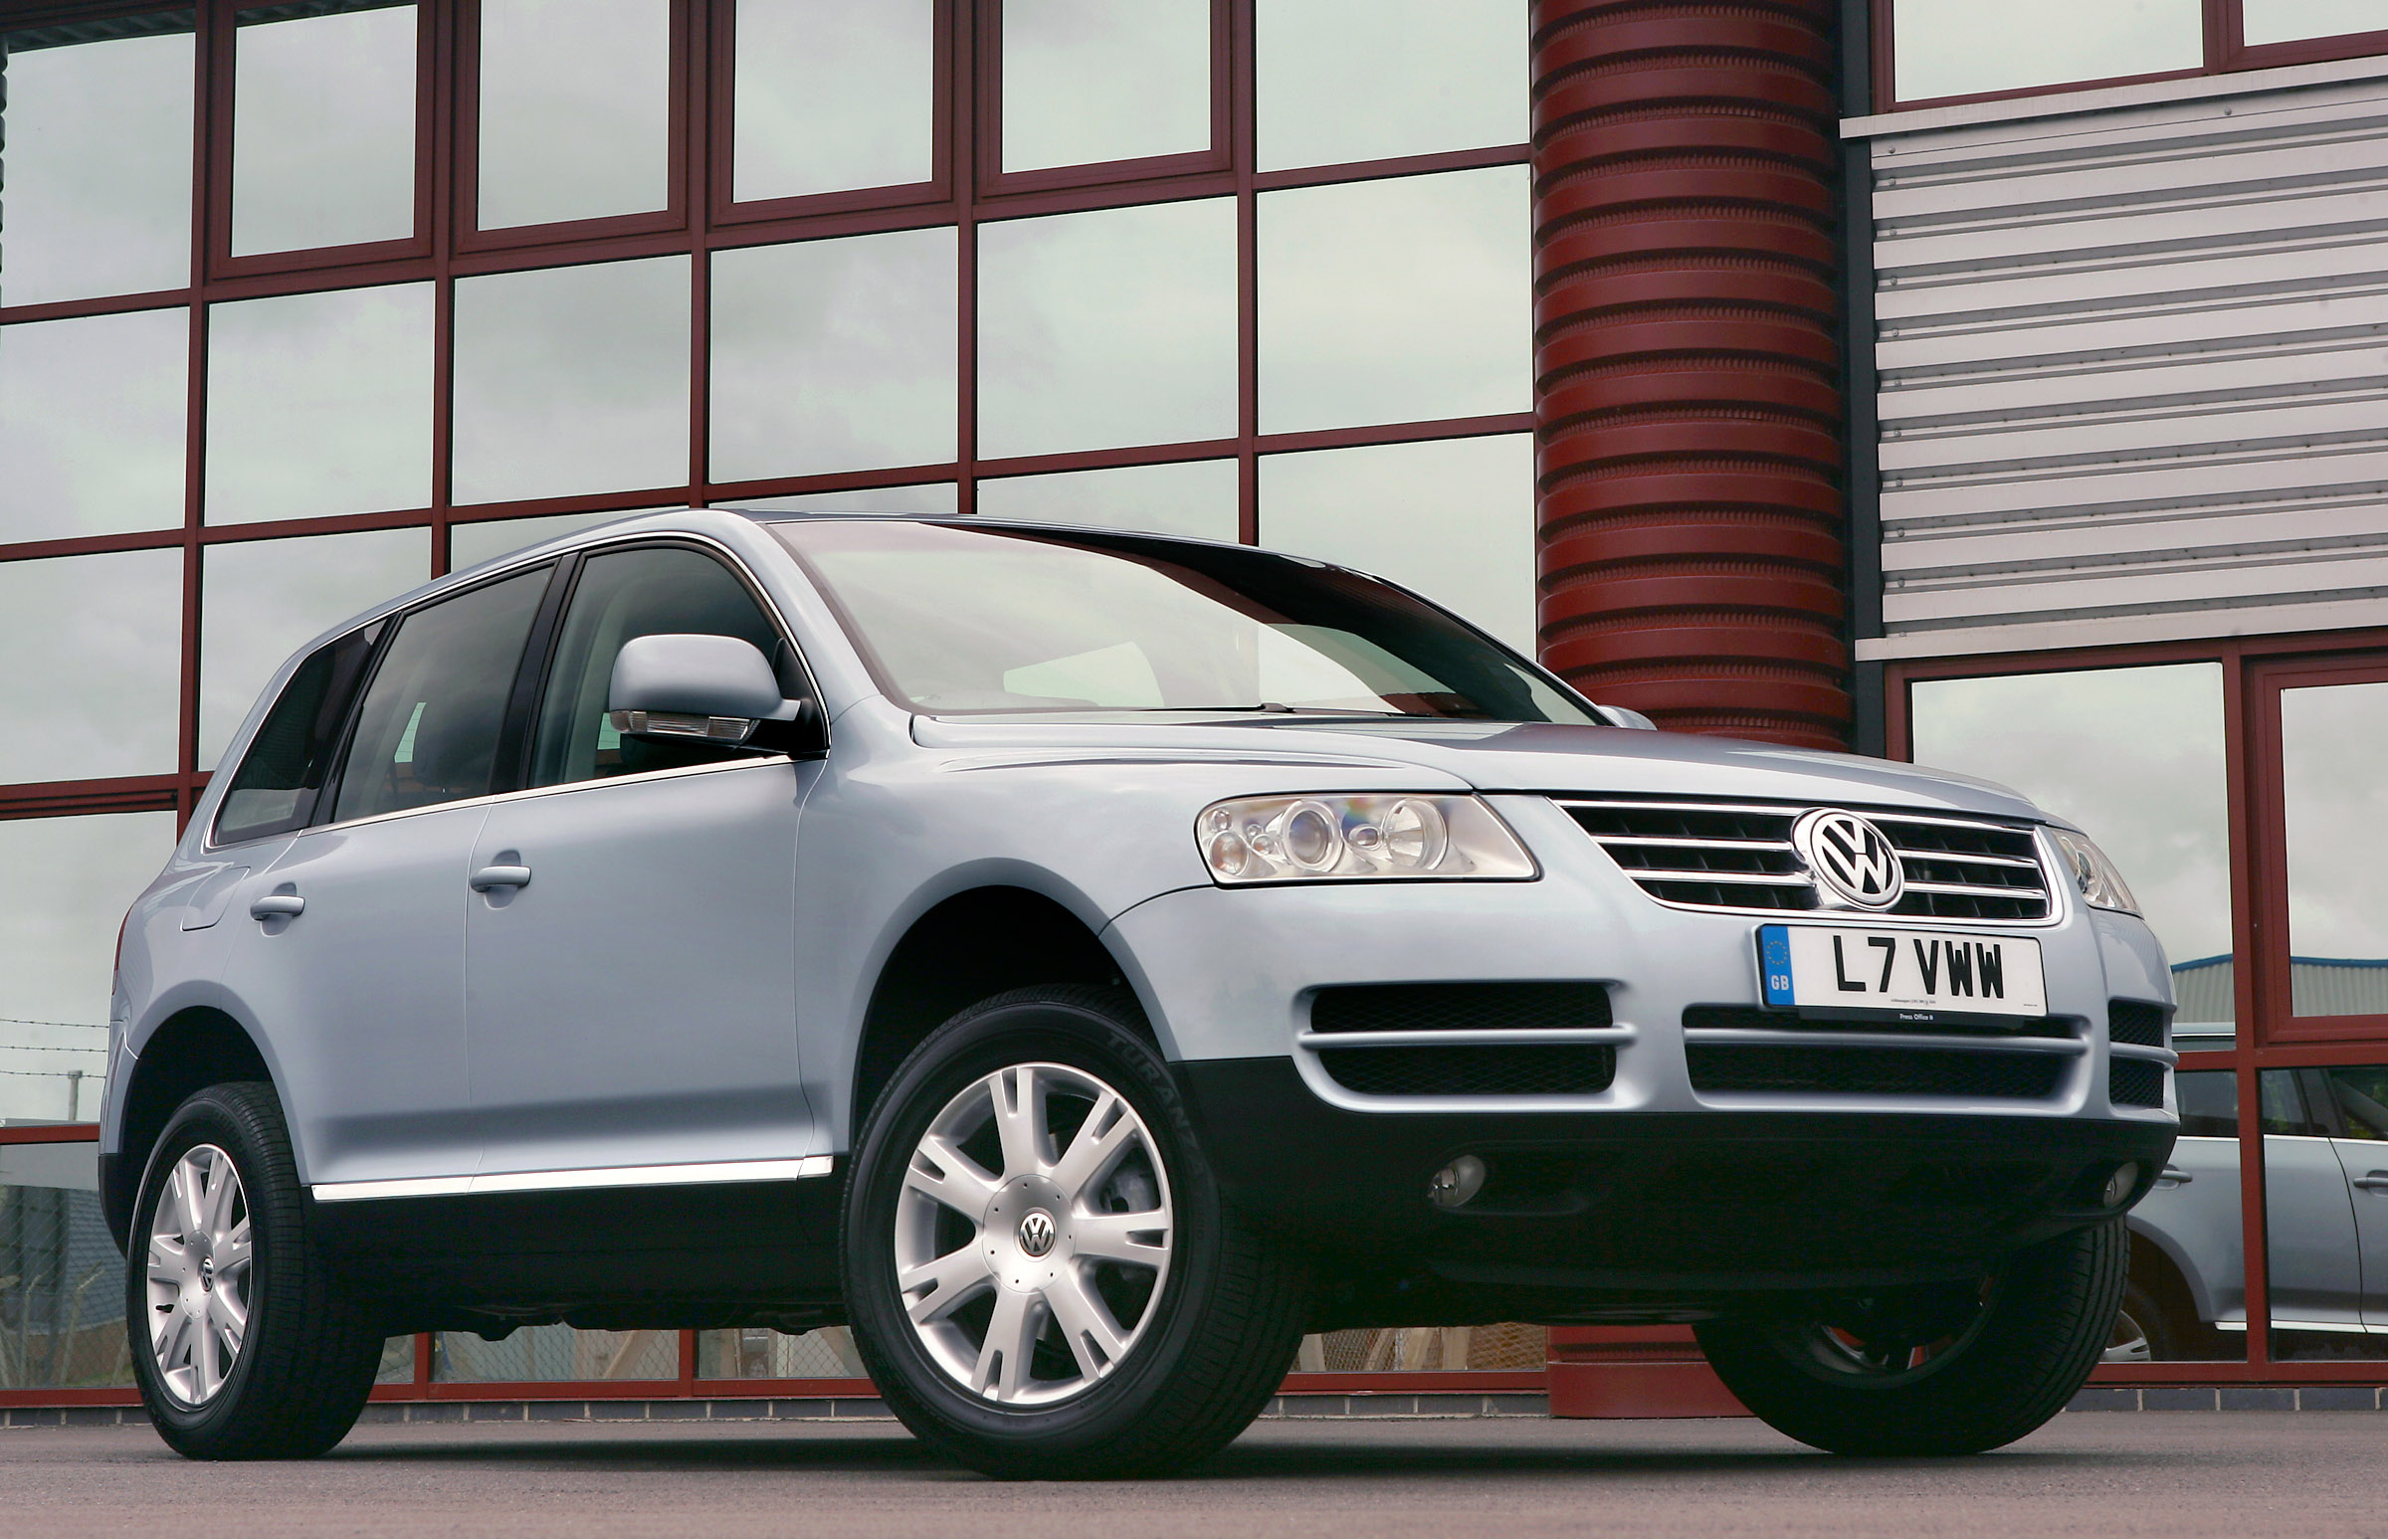 2005 volkswagen touareg picture 71857. Black Bedroom Furniture Sets. Home Design Ideas